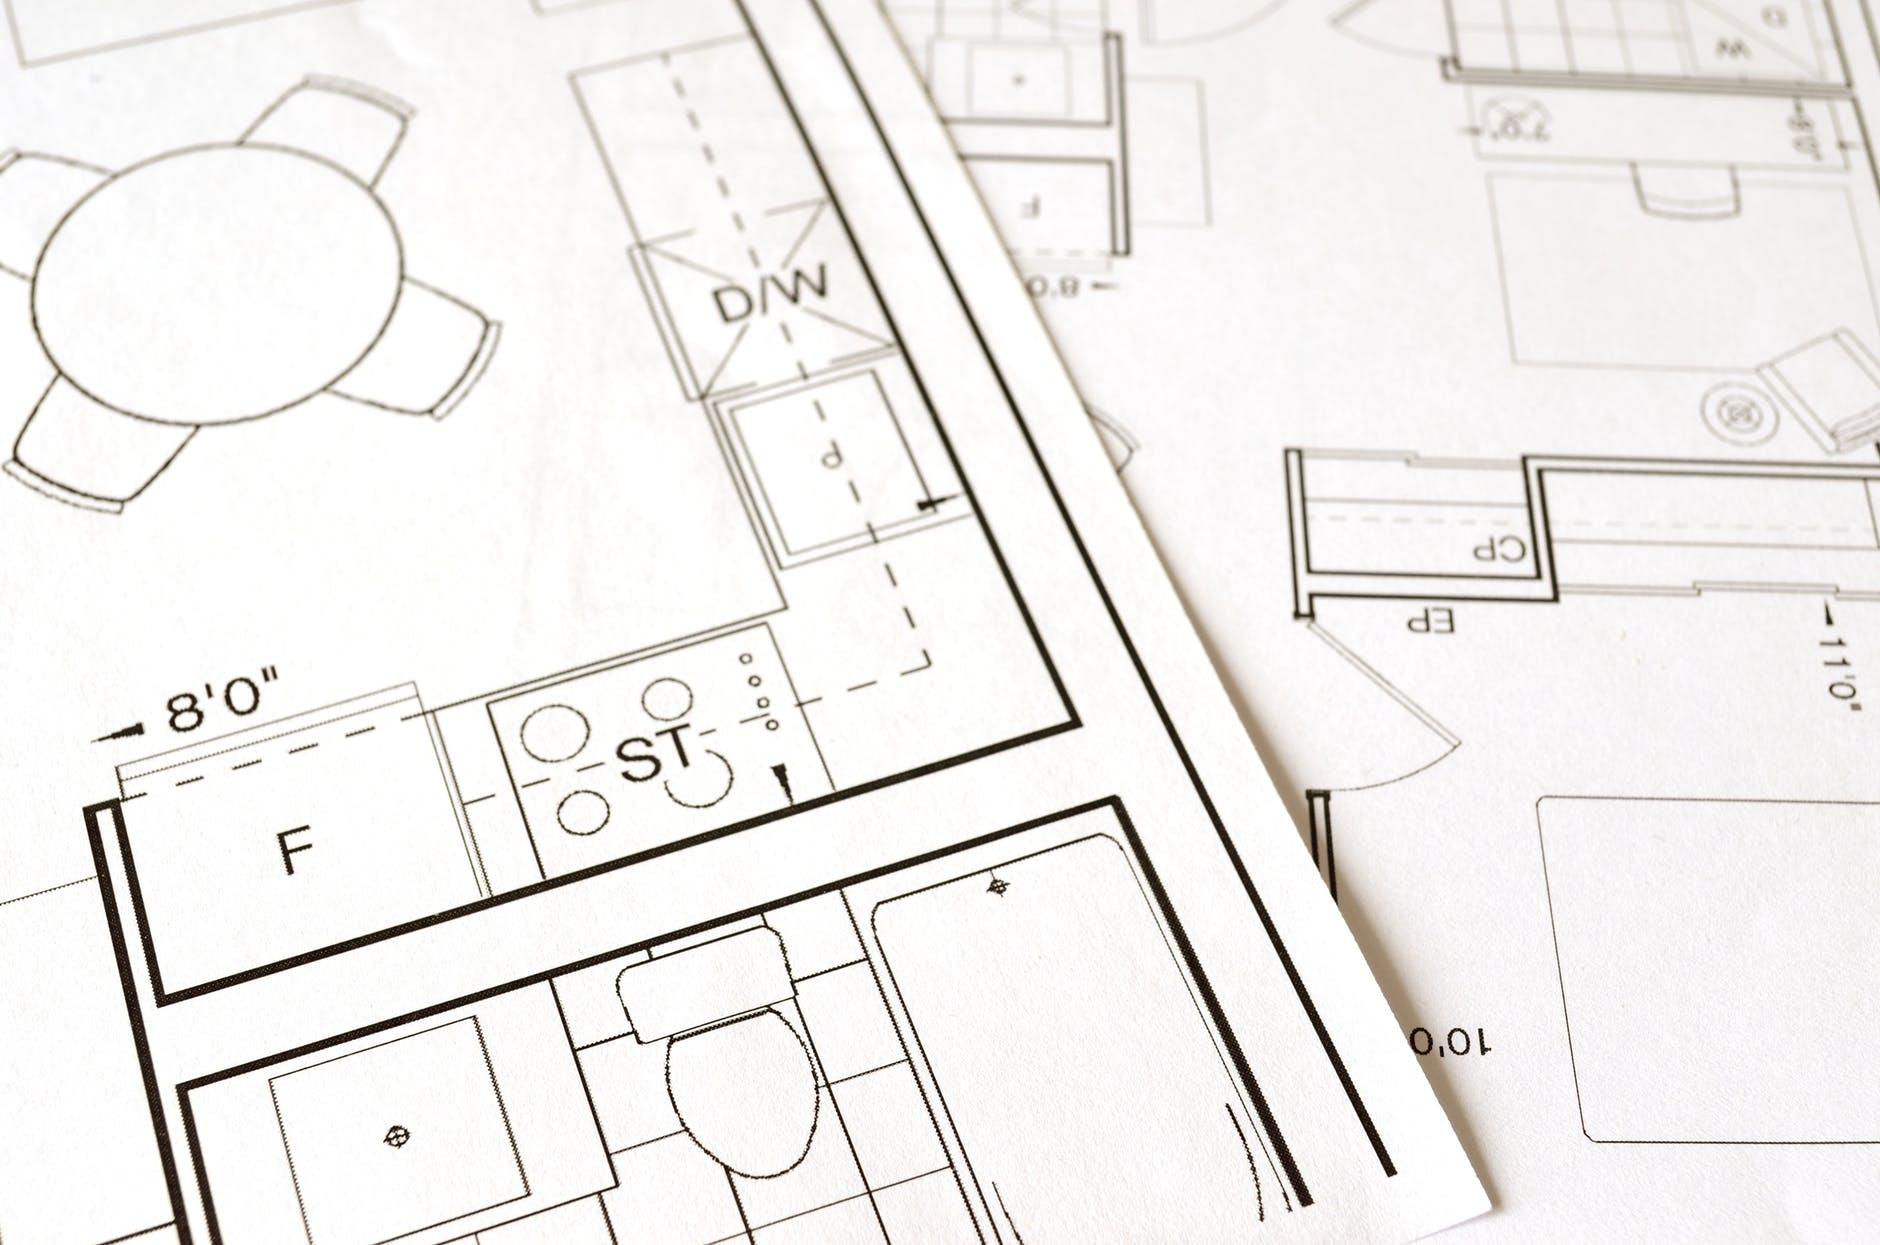 Photo: AutoCAD renderings, from https://www.pexels.com/photo/architect-architecture-blueprint-build-271667/